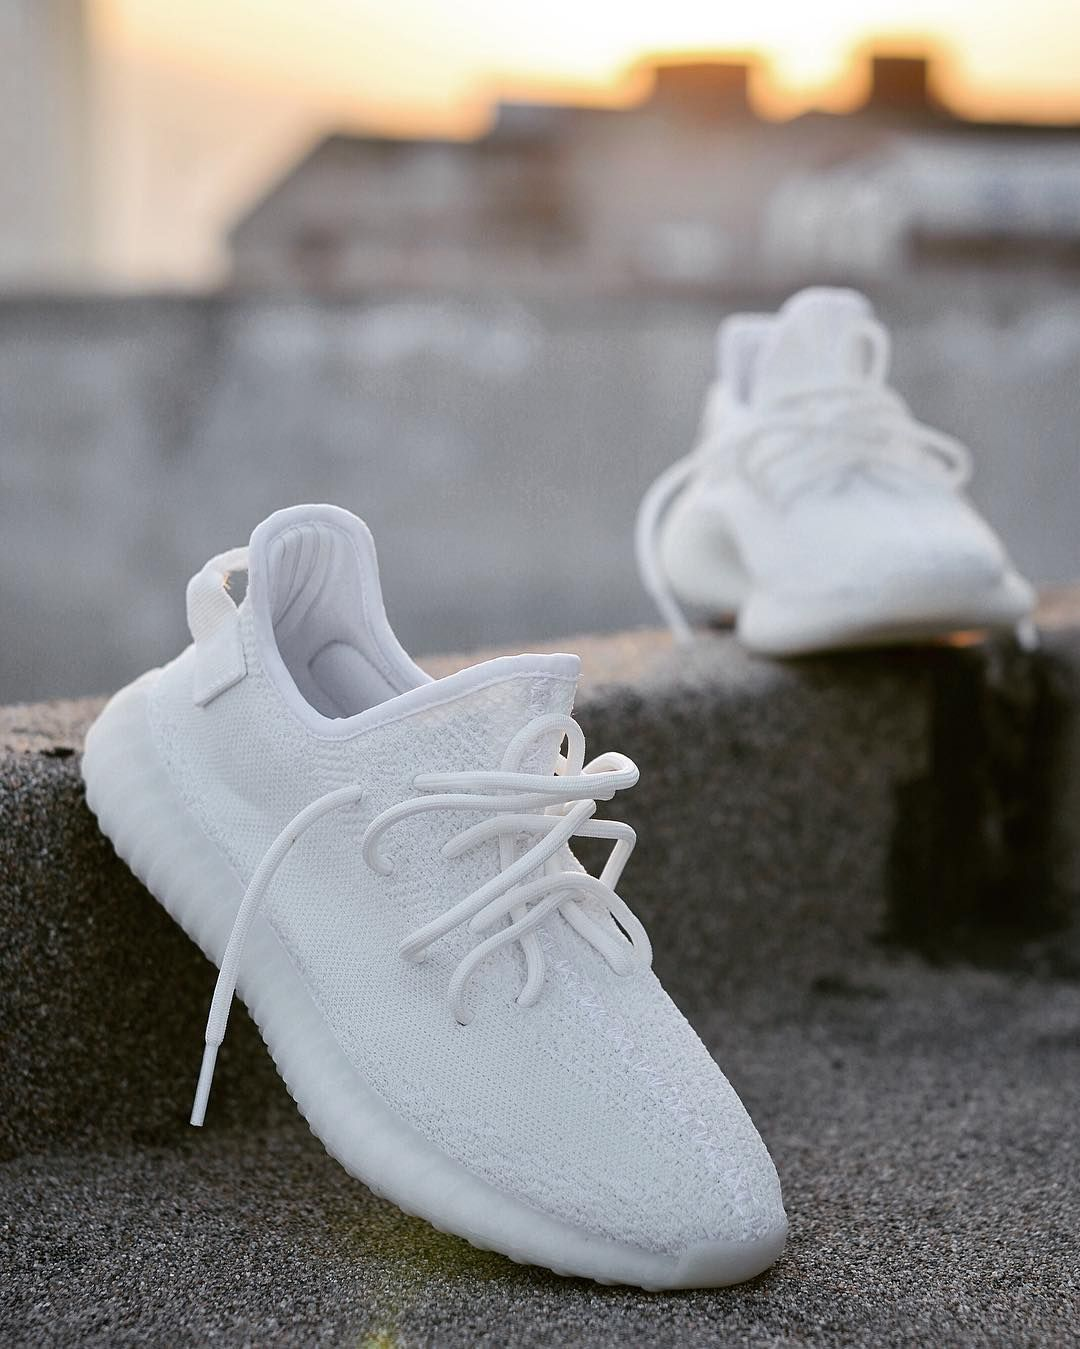 cdaa57a6d8182 Womens size the best Adidas Yeezy Boost 350 INFANT Triple   Cream White UA  sneakers